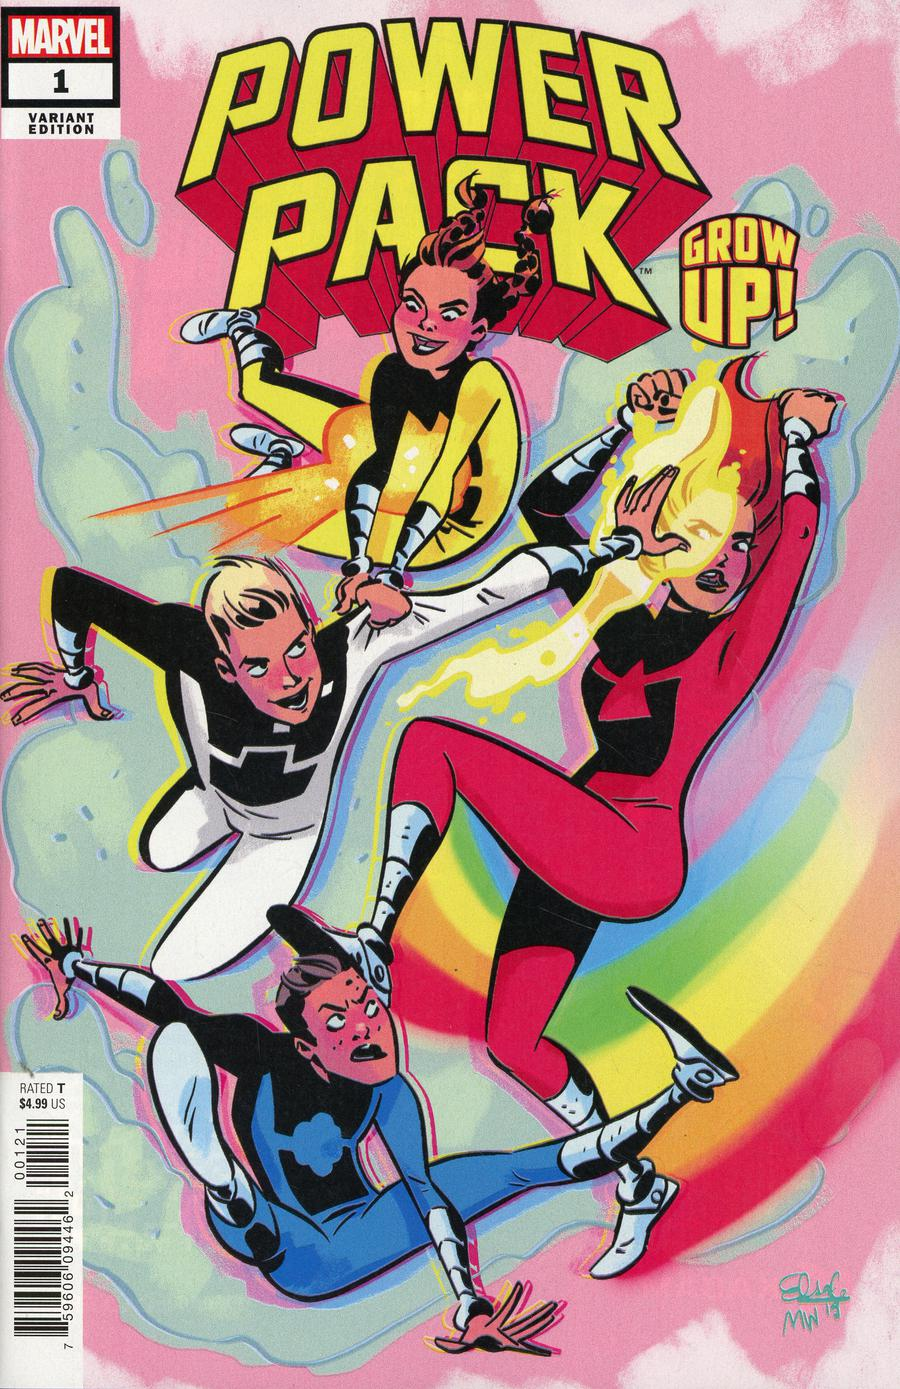 Power Pack Grow Up #1 Cover B Variant Elsa Charretier Cover